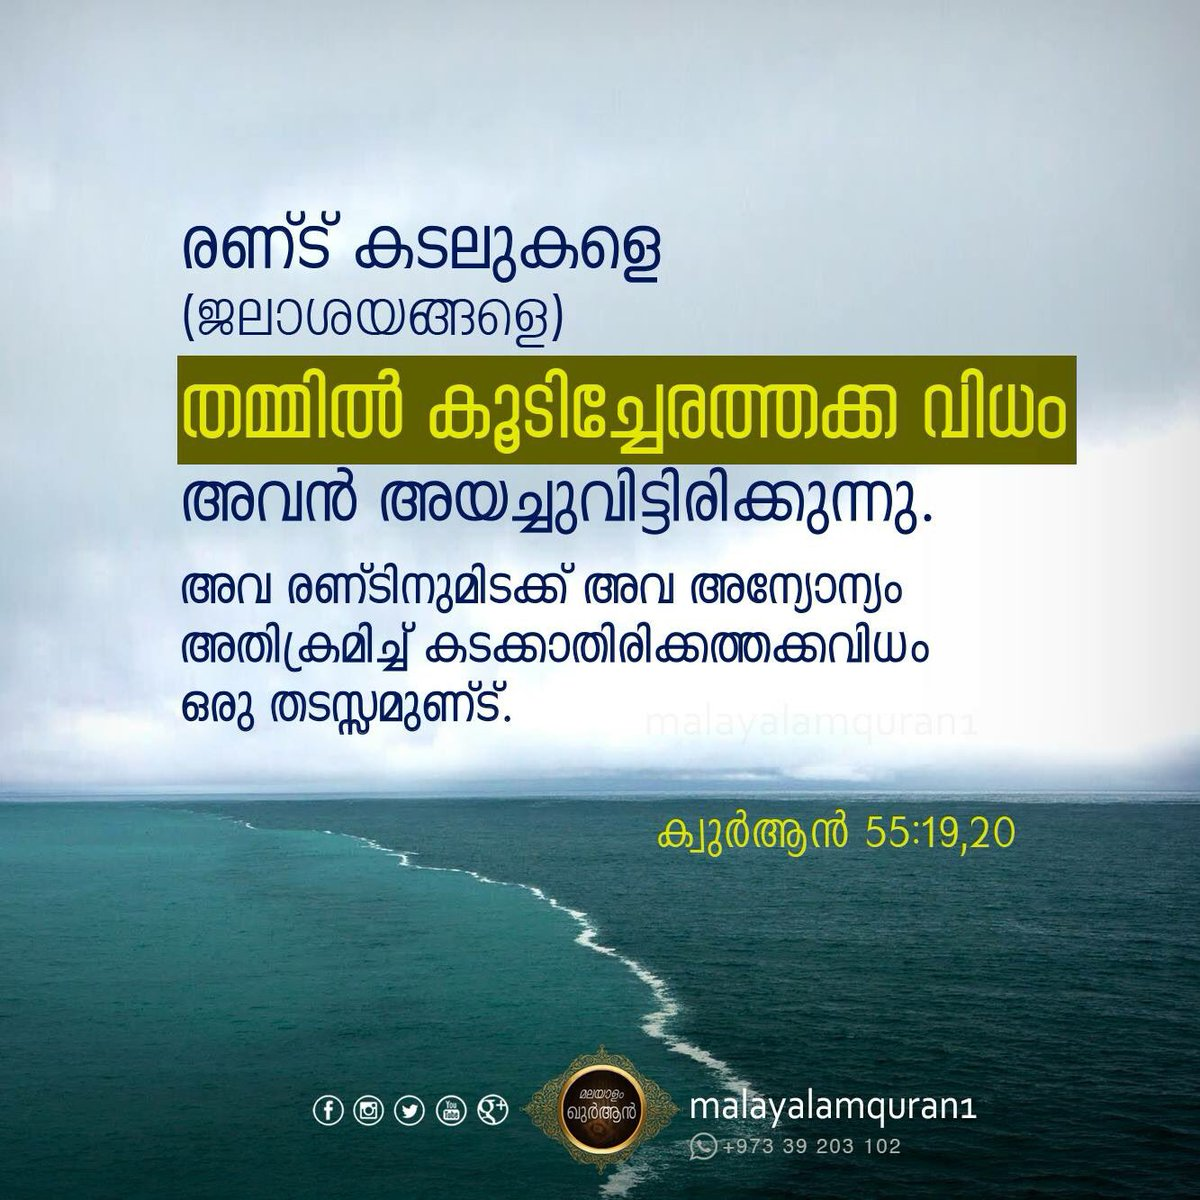 malayalam quran on quran quote